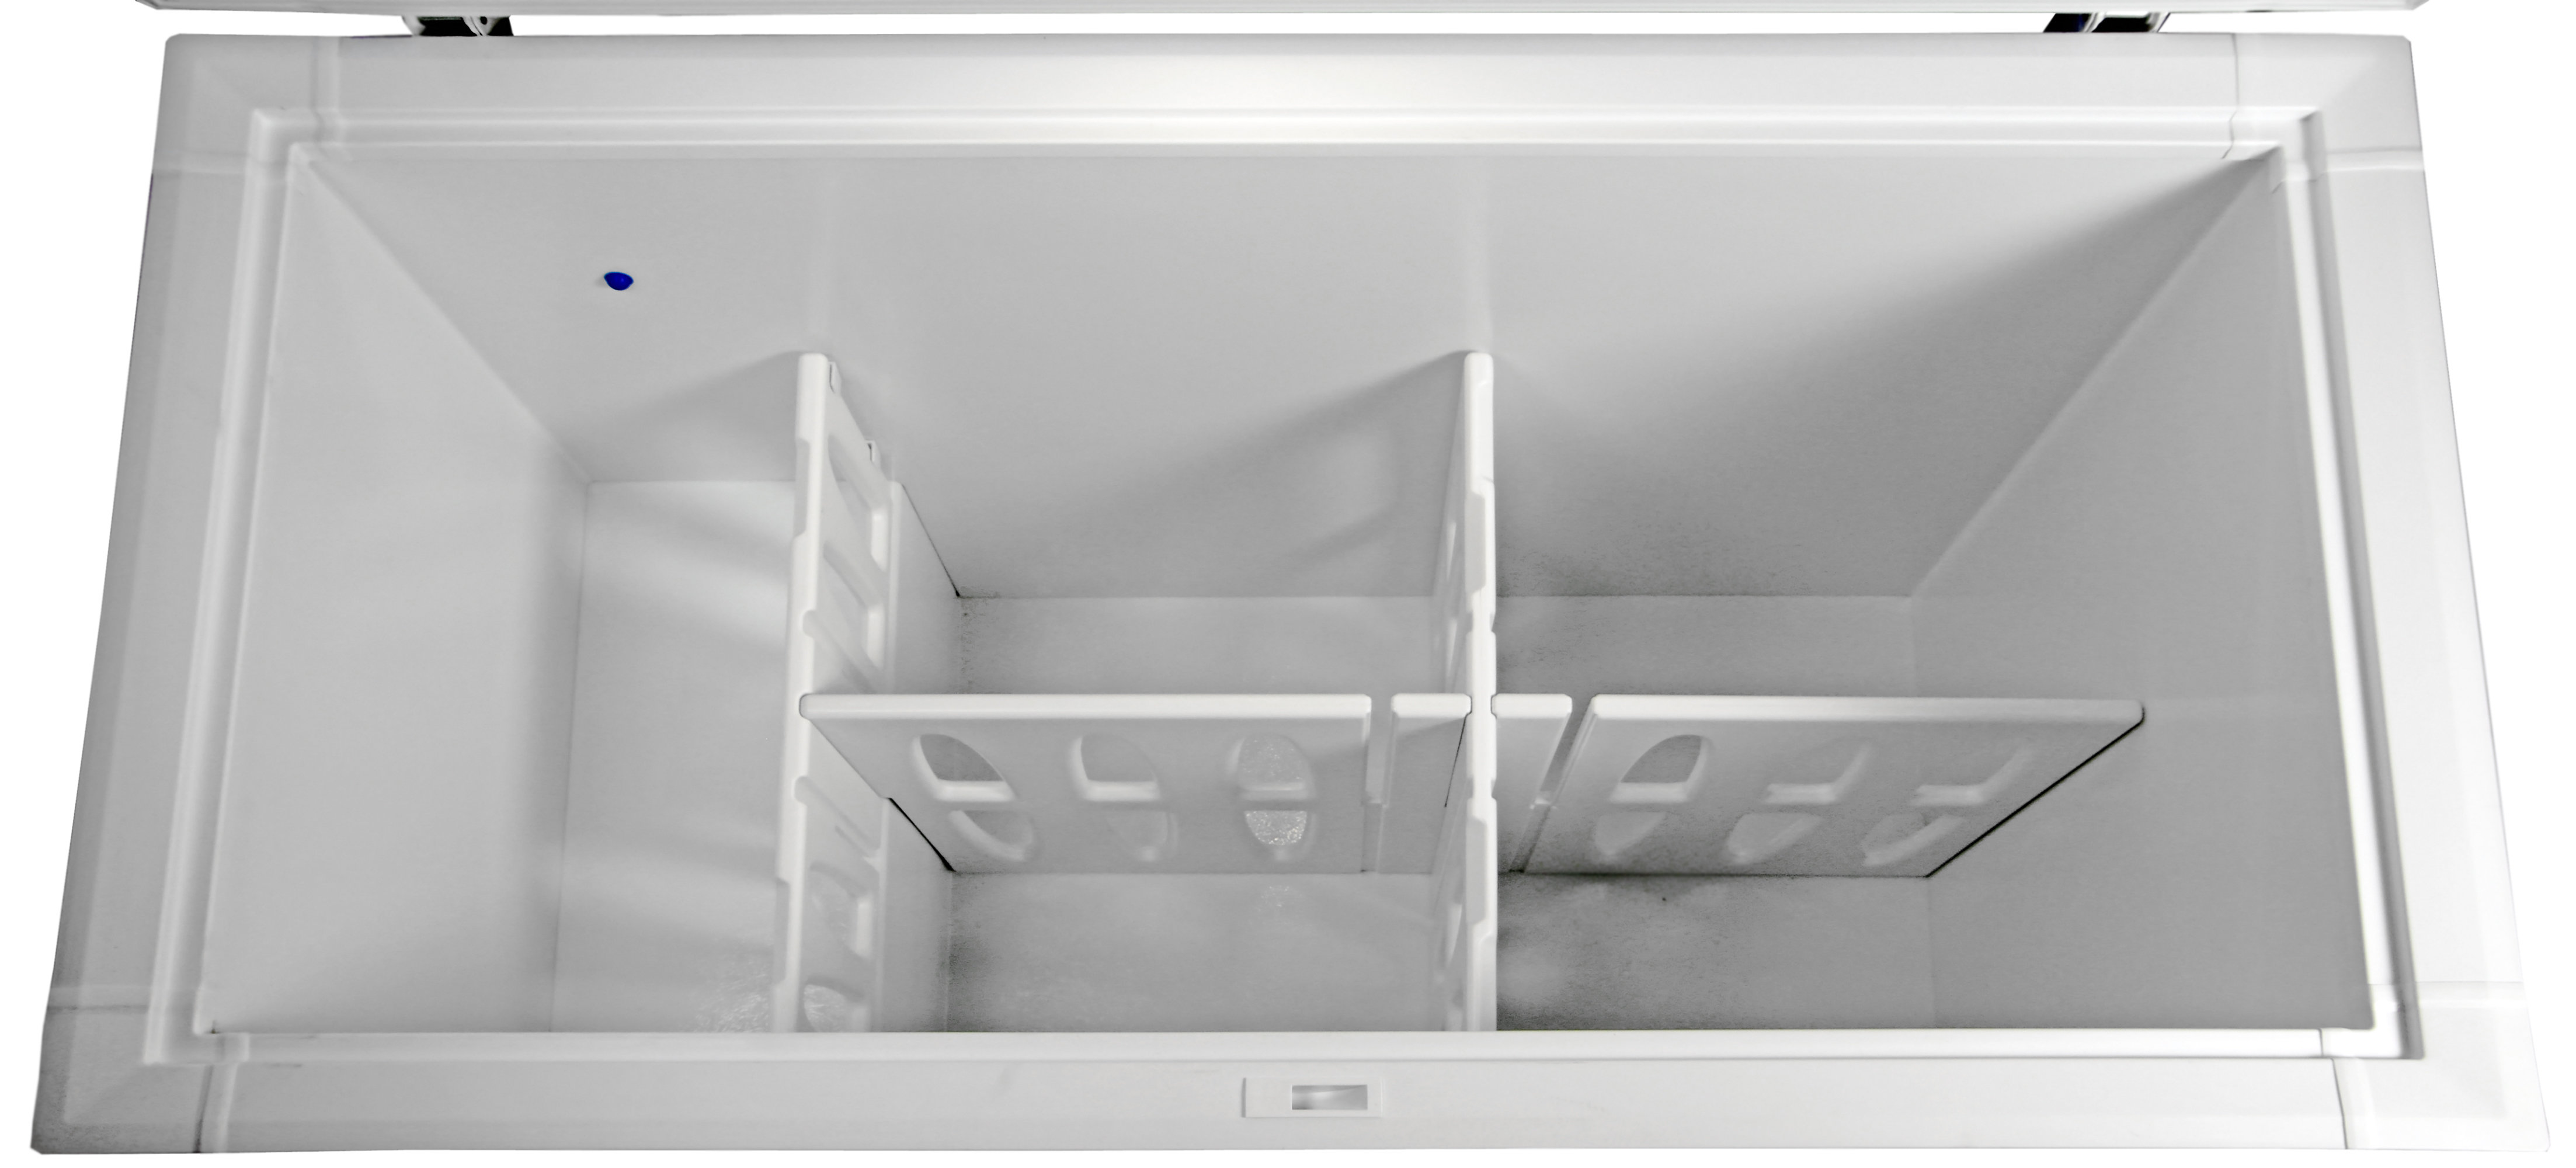 Under the Kenmore 16542's storage baskets, plastic dividers create zones for easy food organization.